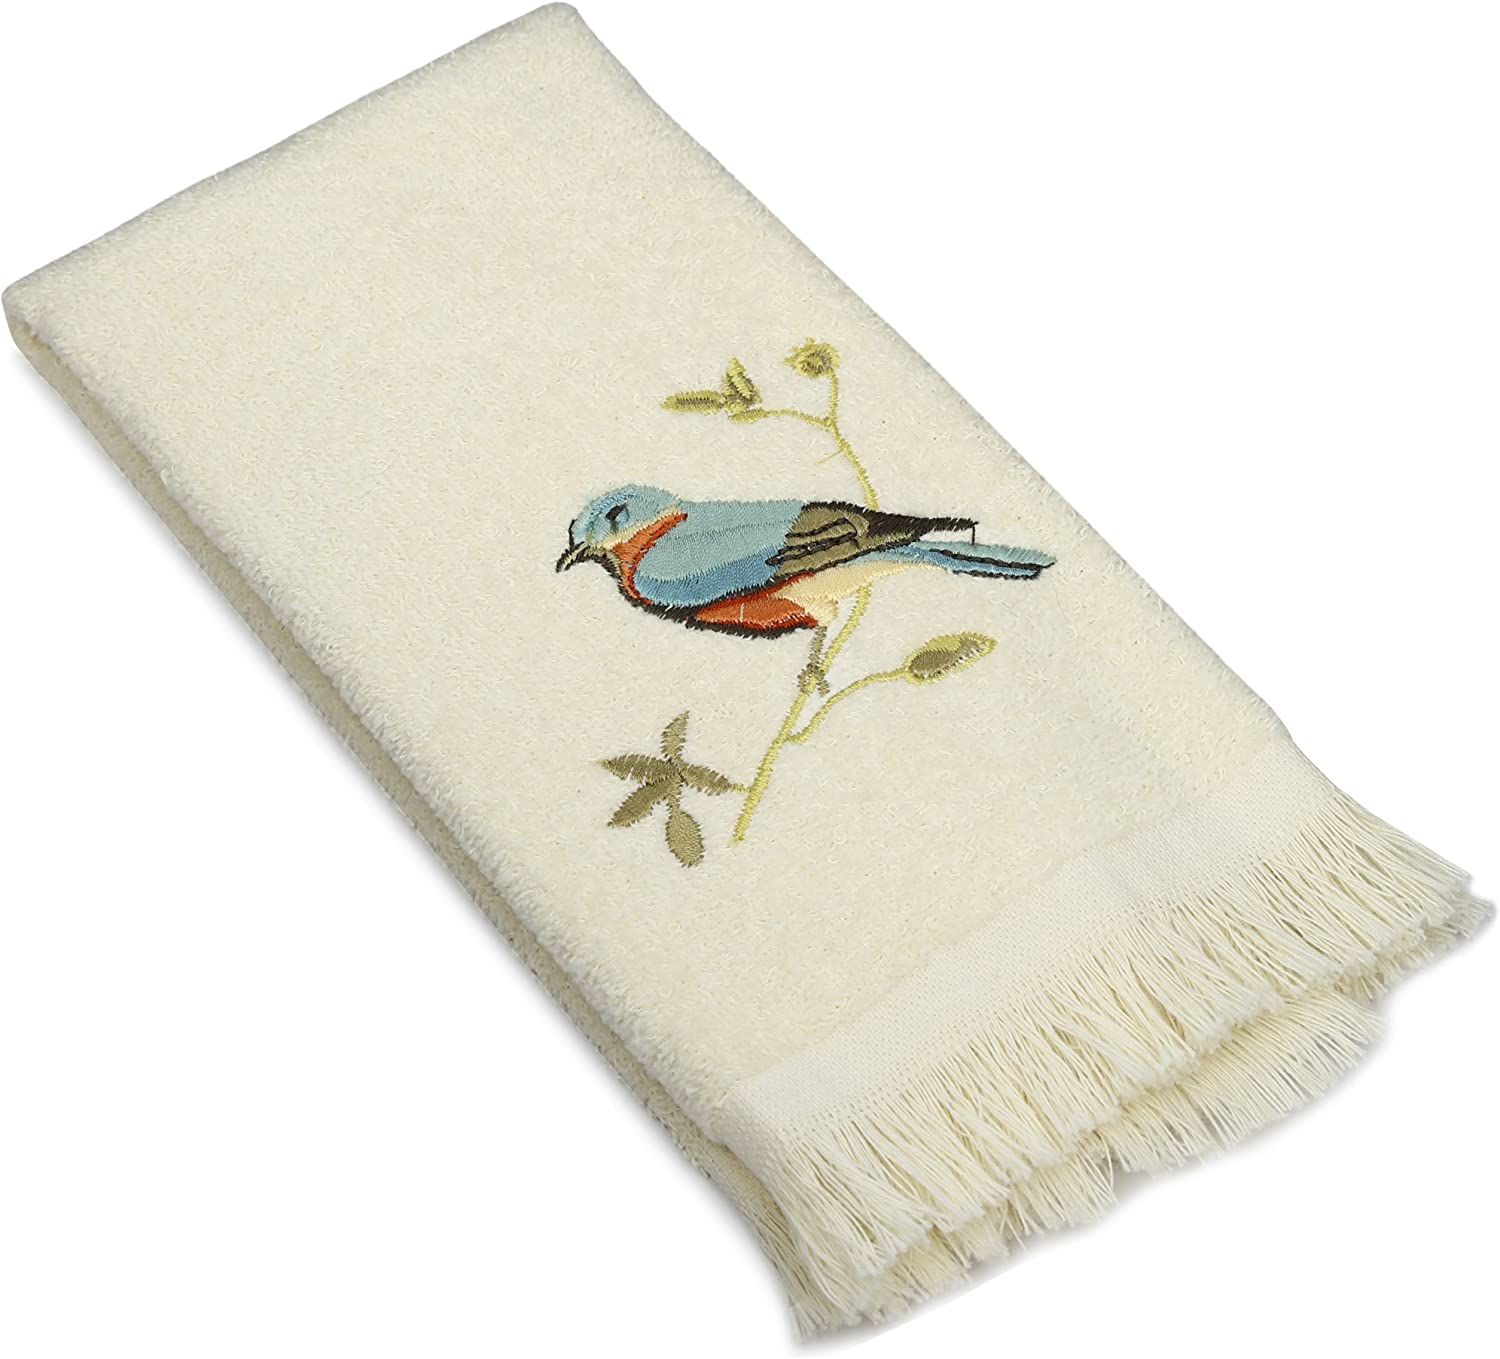 Avanti Linens Gilded Outlet ☆ Free Shipping Birds Fingertip online shop Towel Ivory Collection